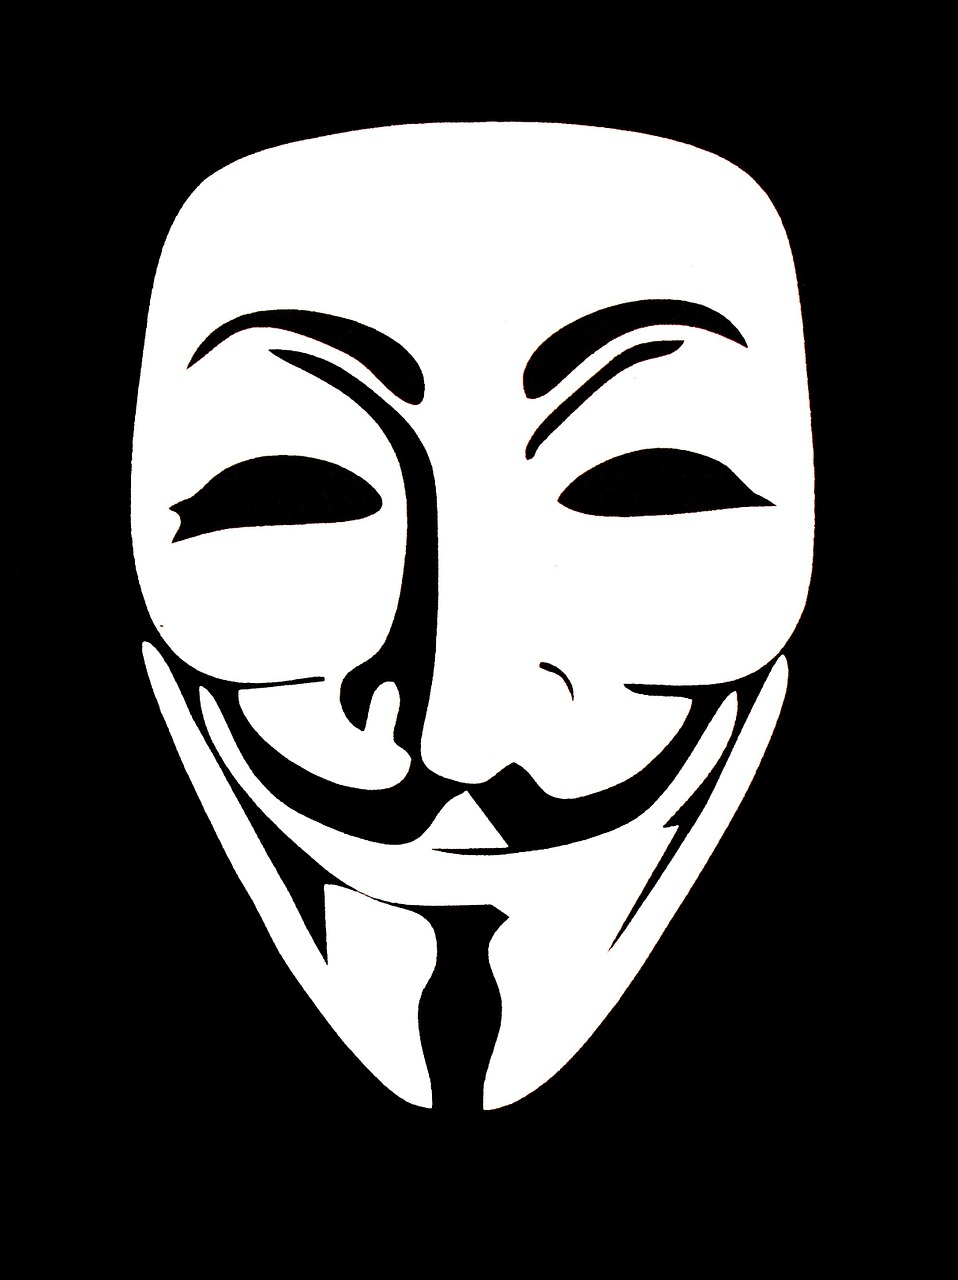 anonymus revolution guy fawkes free photo